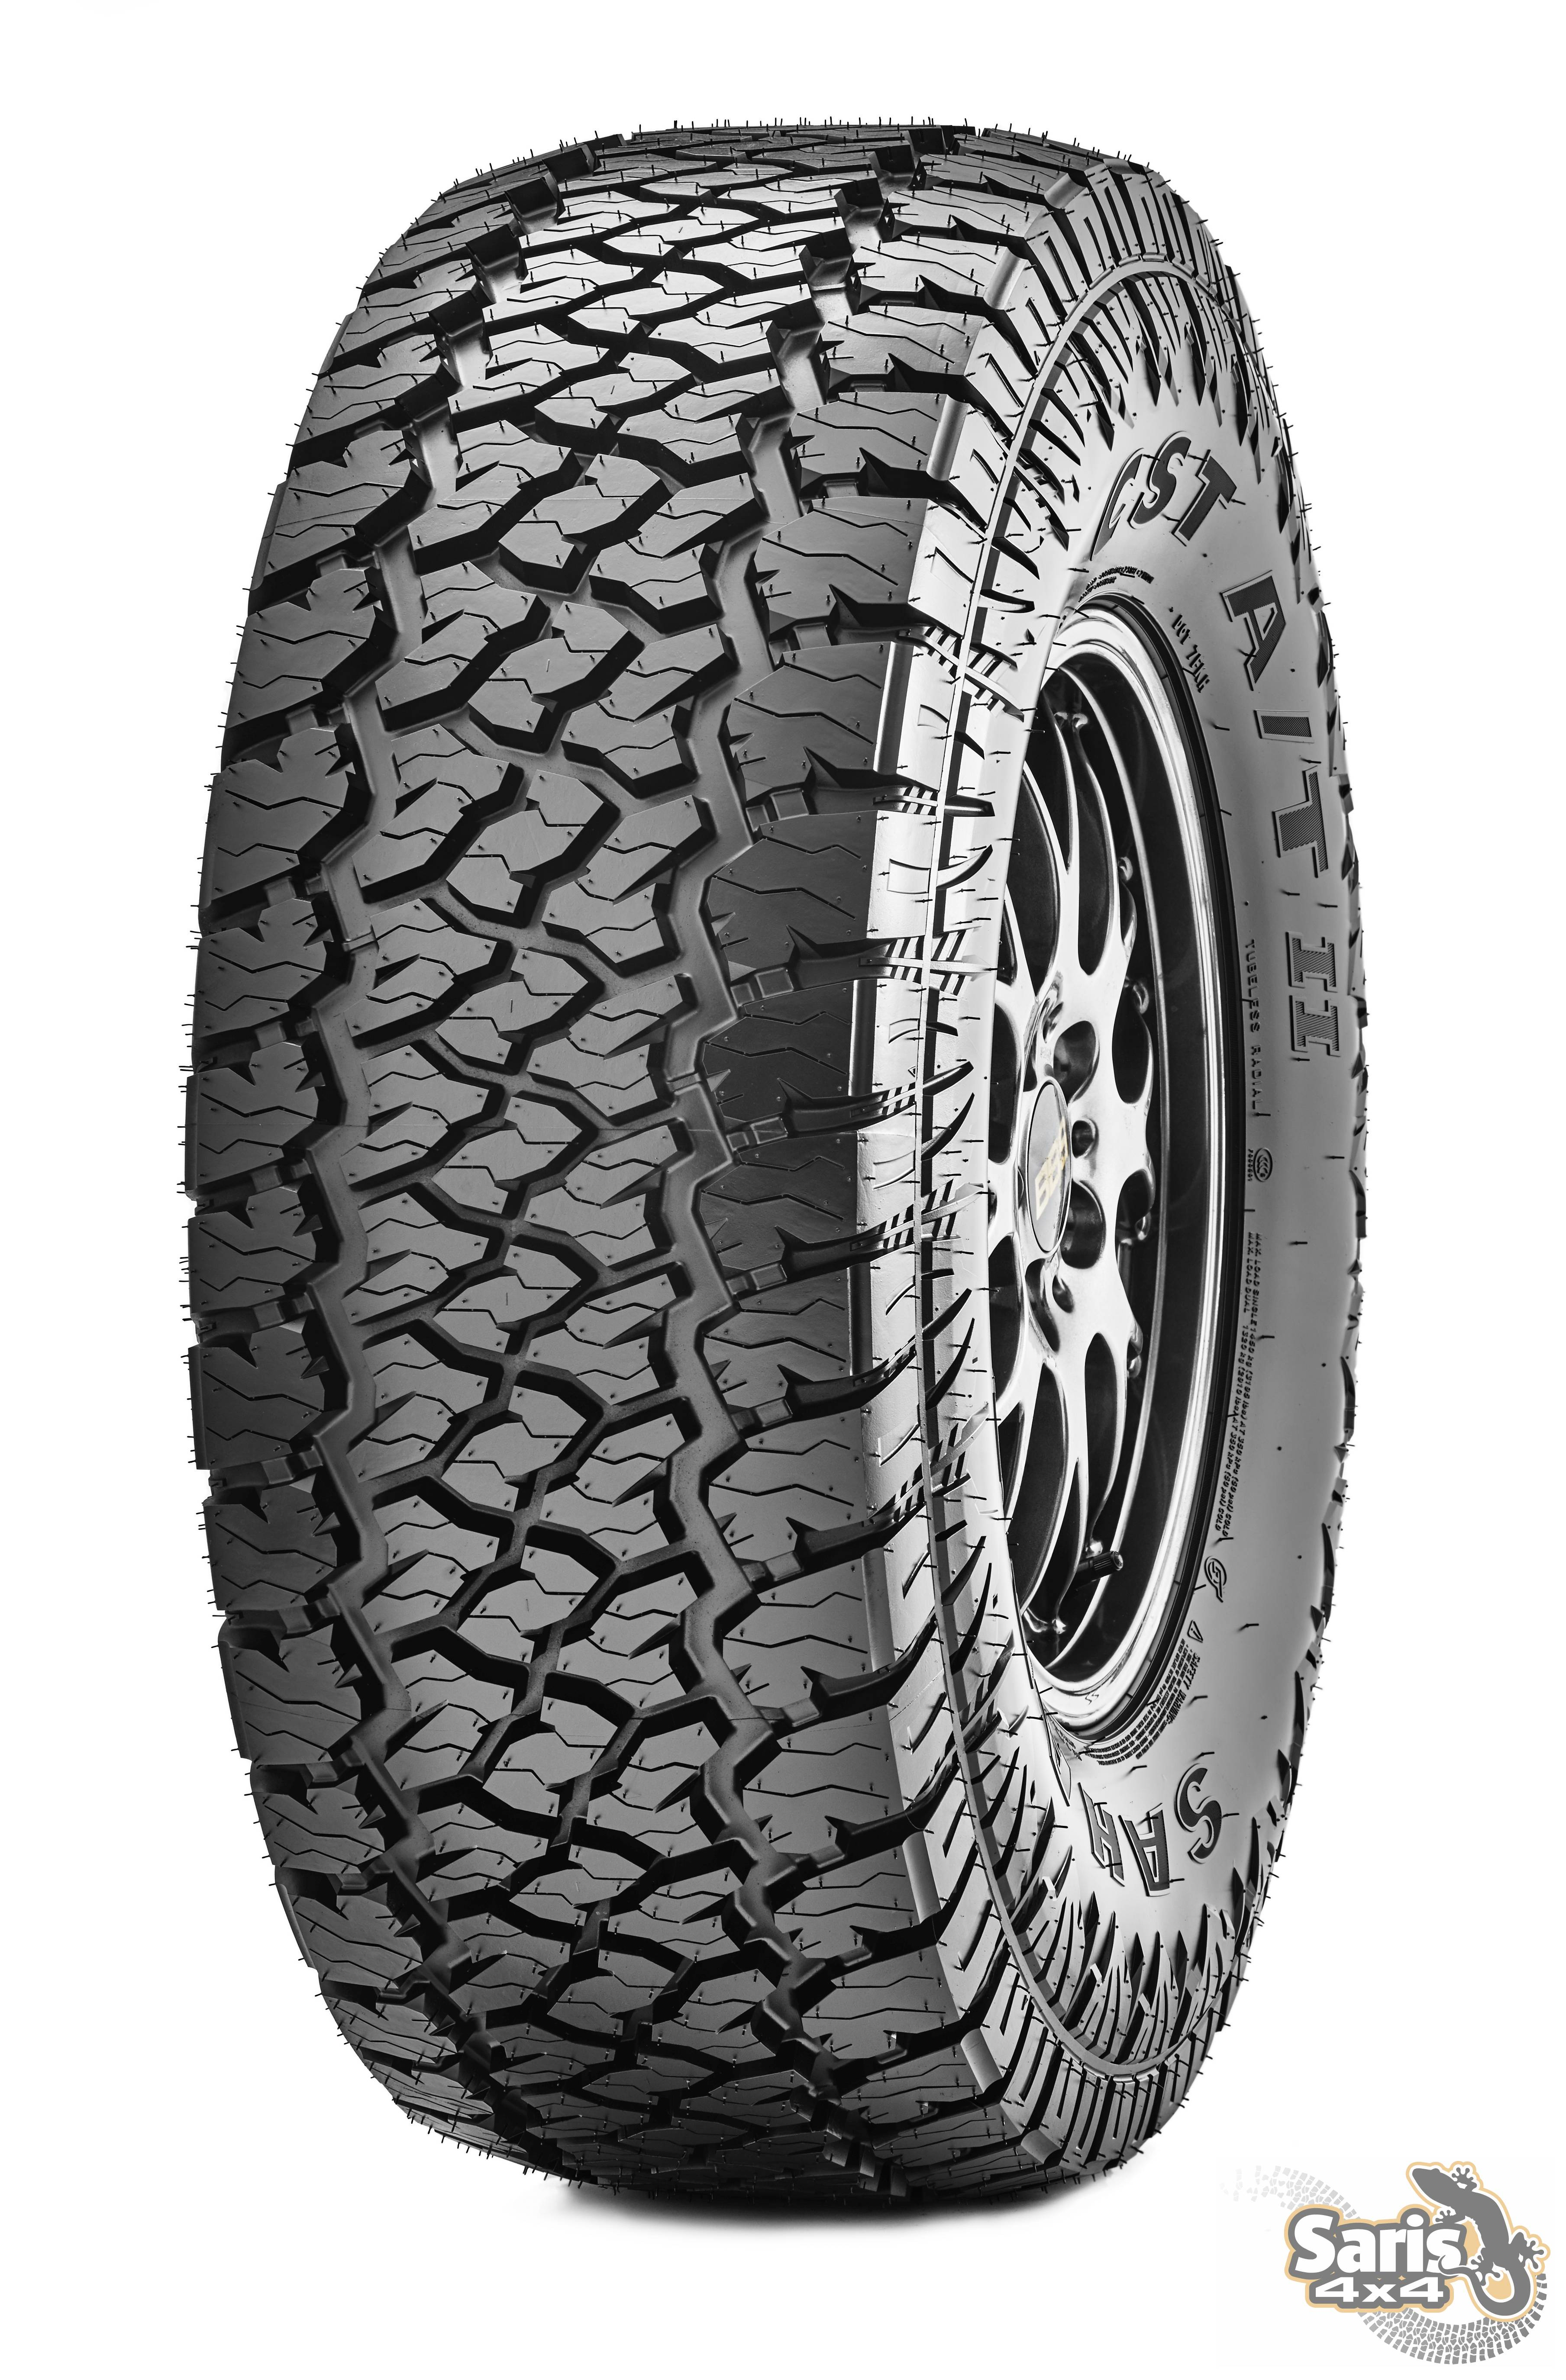 Hedendaags CST Offroad banden - Saris4x4 LM-39